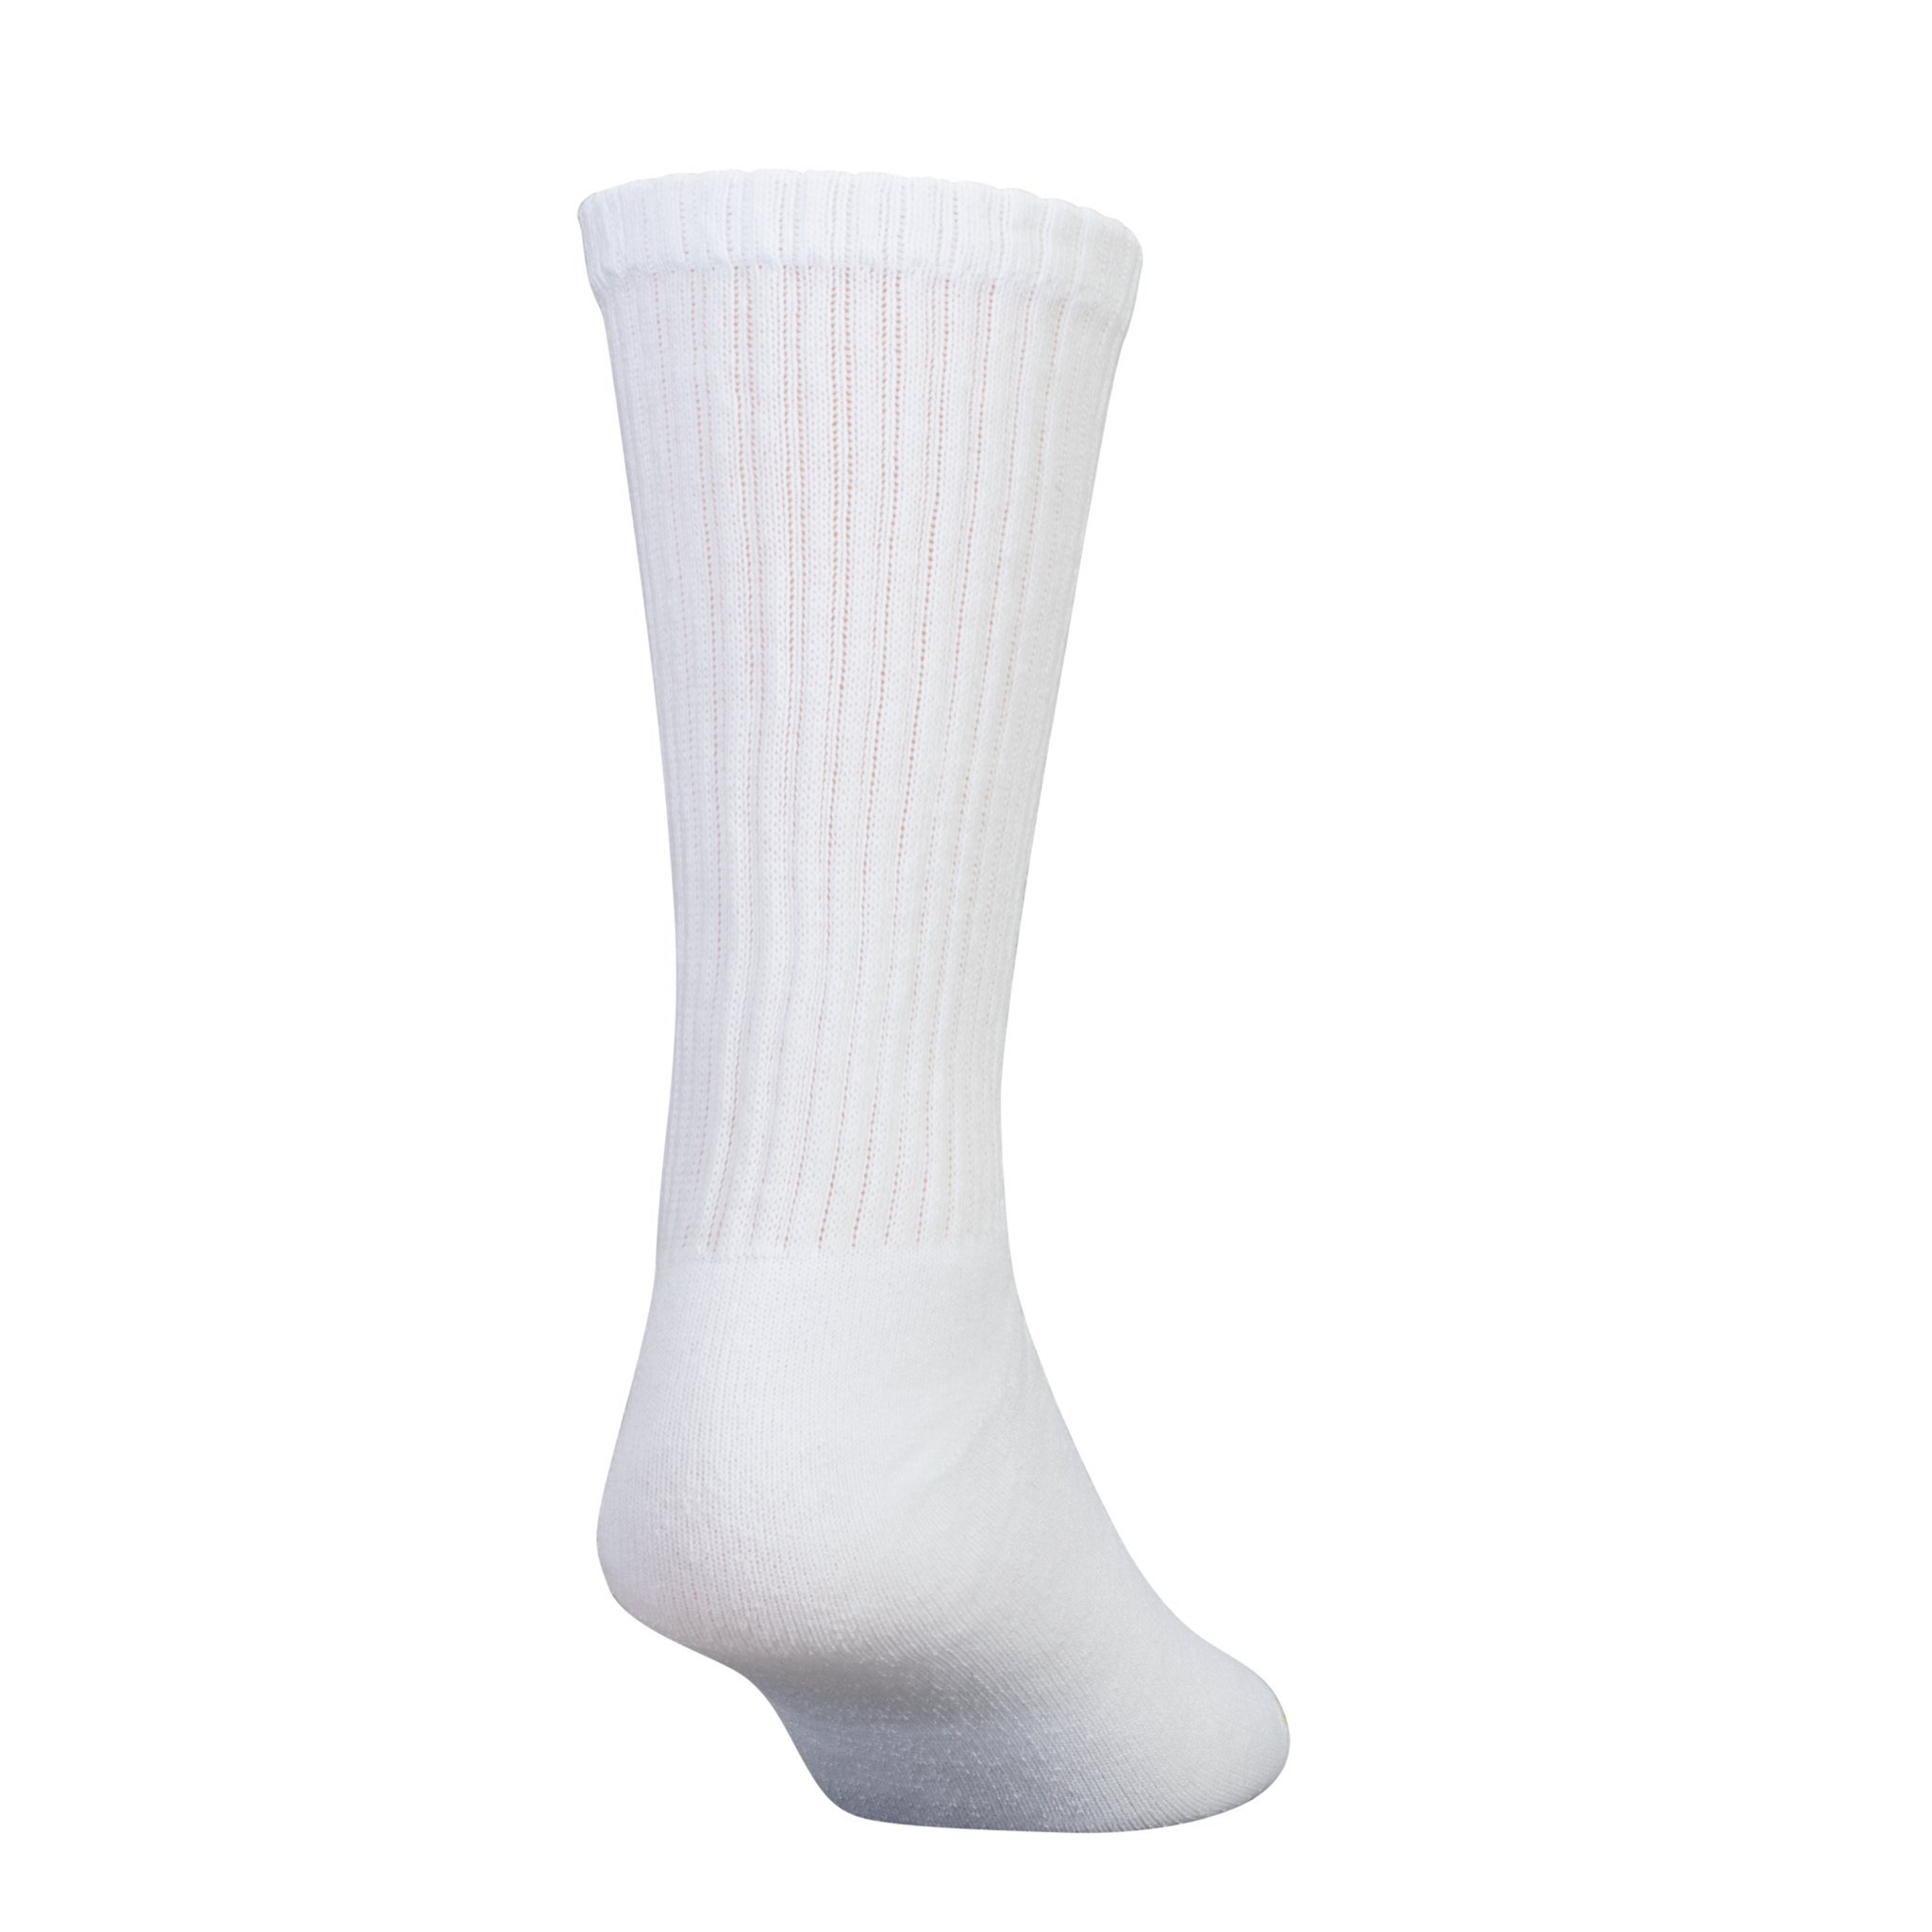 Gold Toe Men s Cotton Crew Athletic Sock, White 10-13, 2 PK (Total 12)